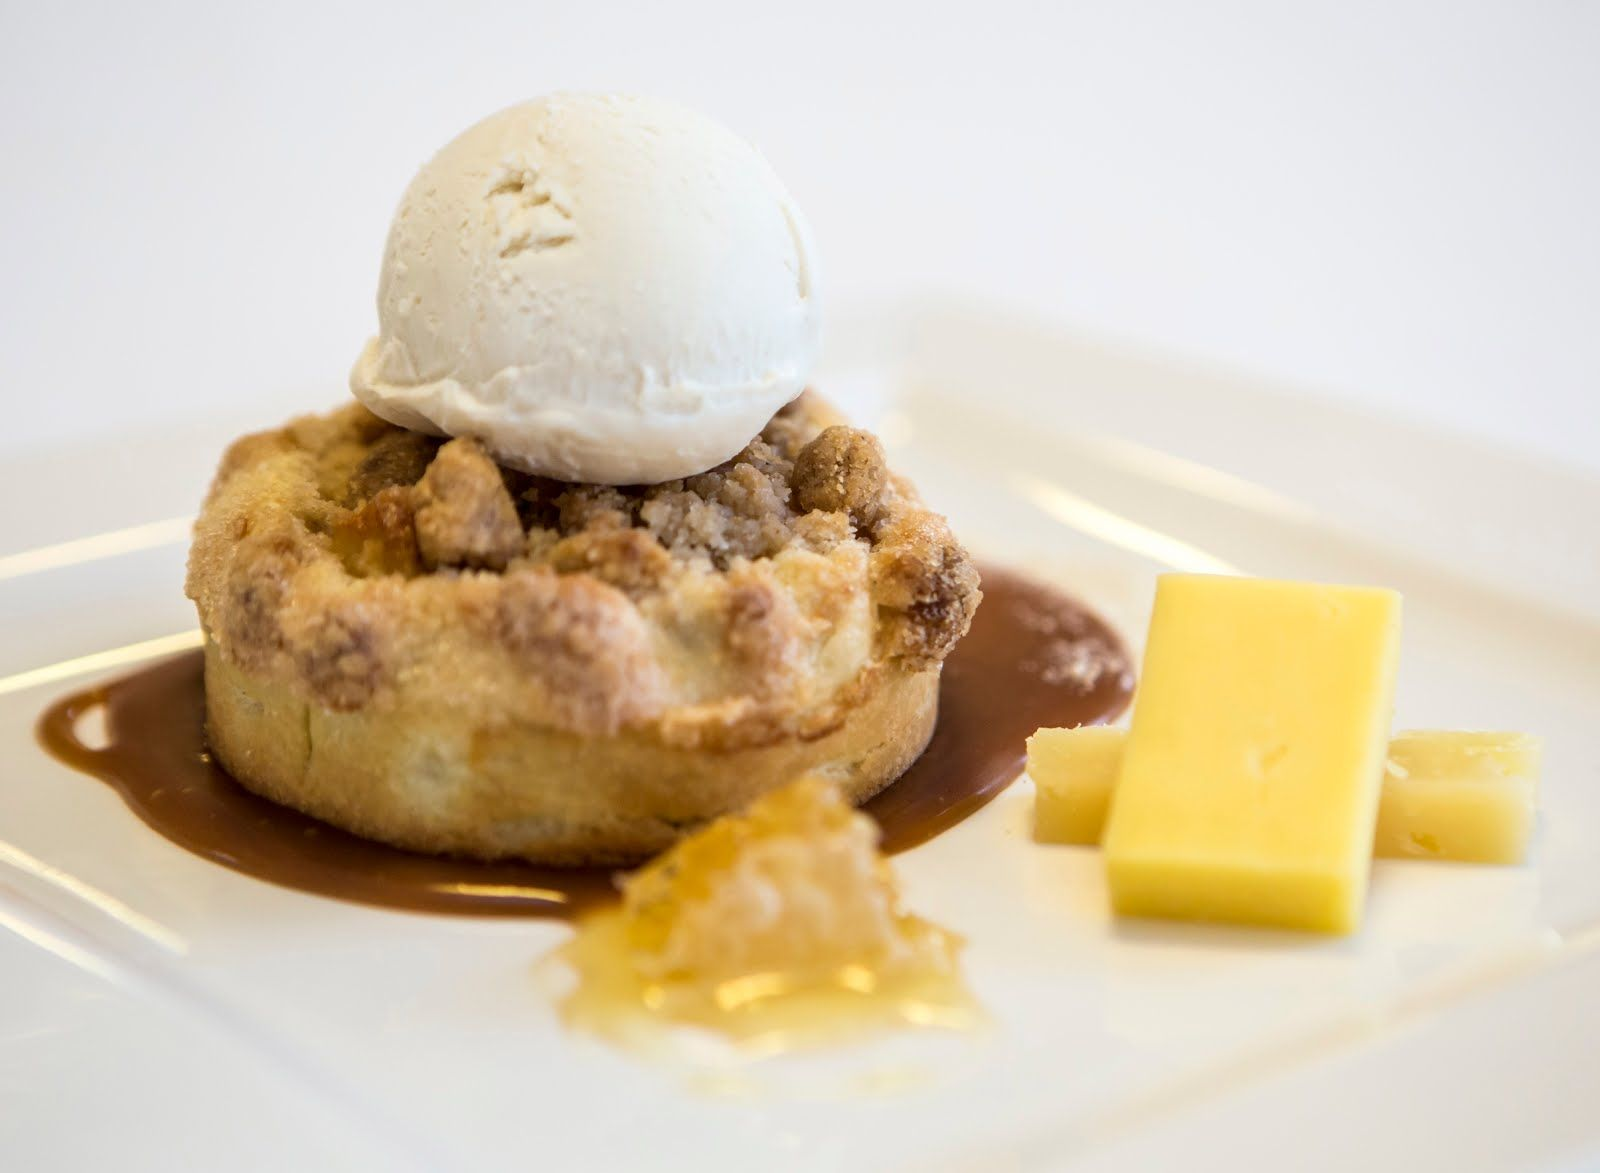 Hudson Valley Apple Pie with Sour Cream Ice Cream, Aged Cheese and Honey